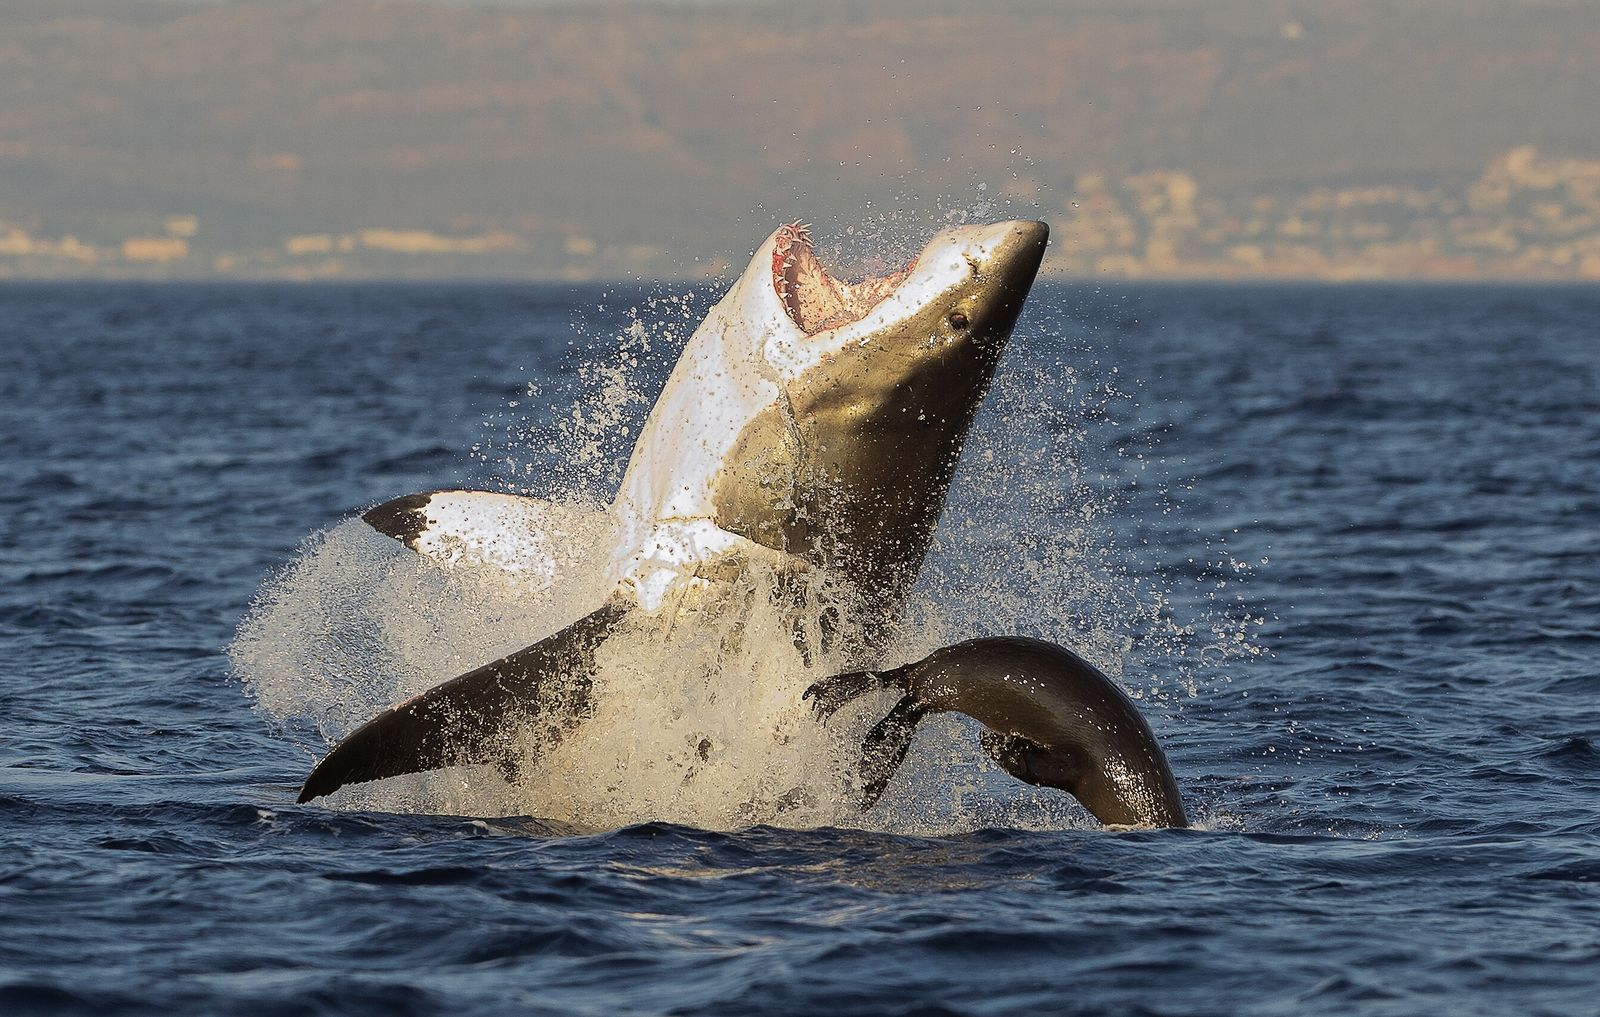 A great white shark attacks a seal by ambushing from below off the coast of South ...